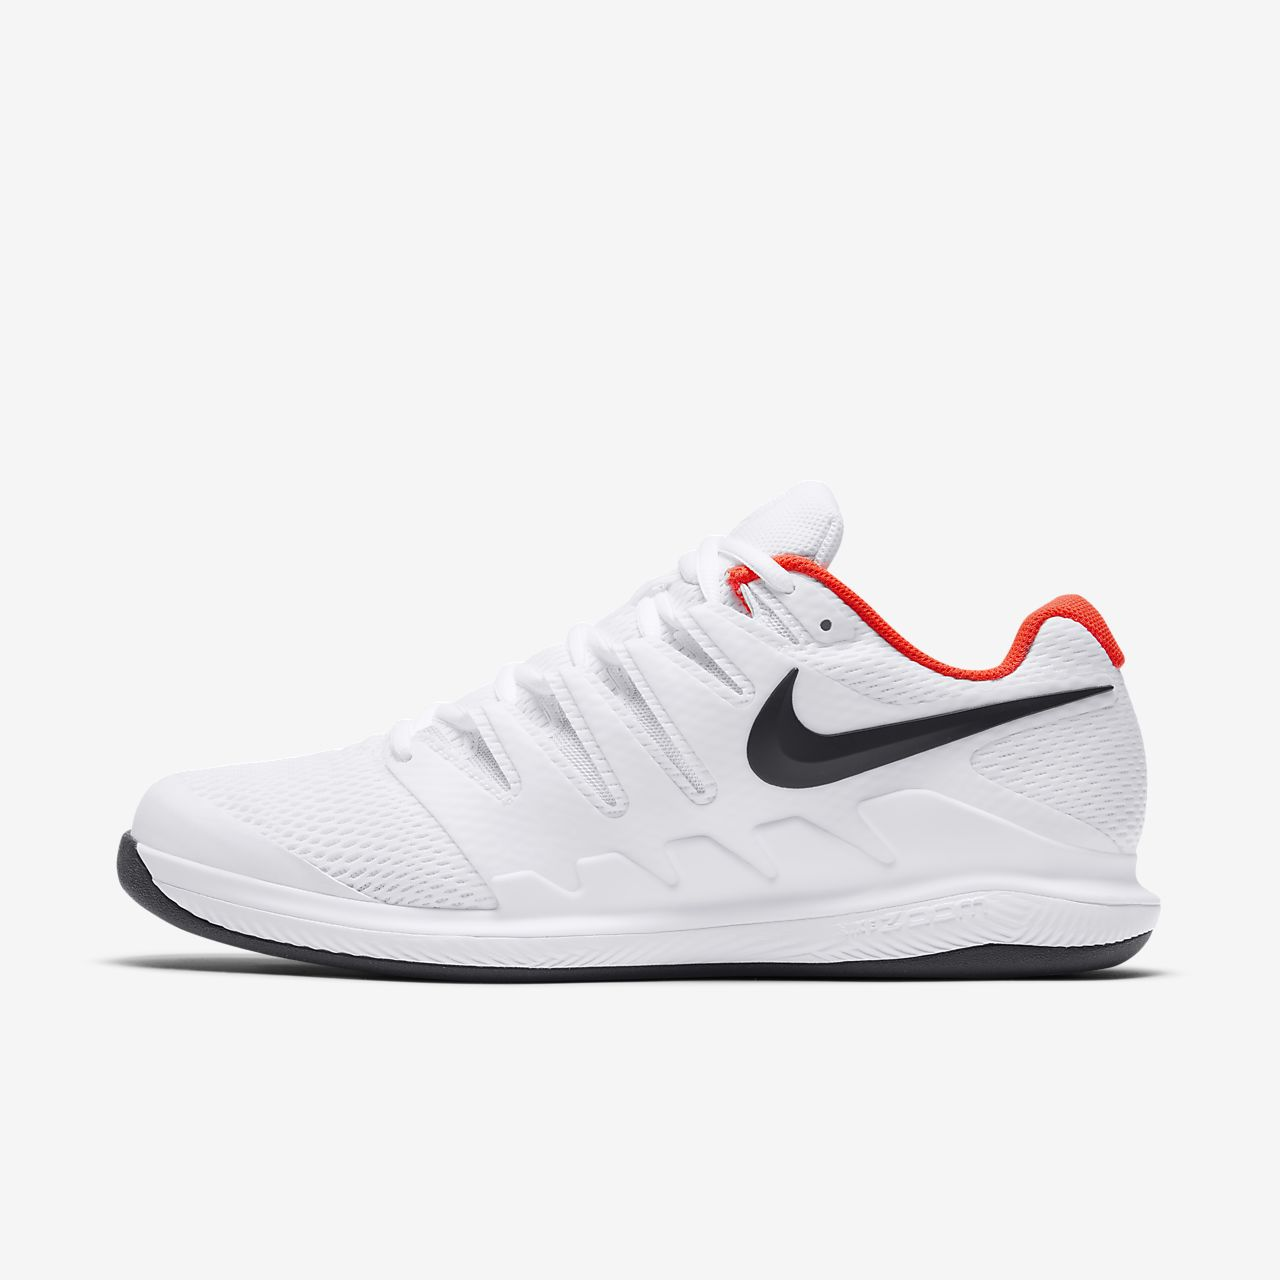 Nike Air Zoom Vapor X Carpet tennissko til herre